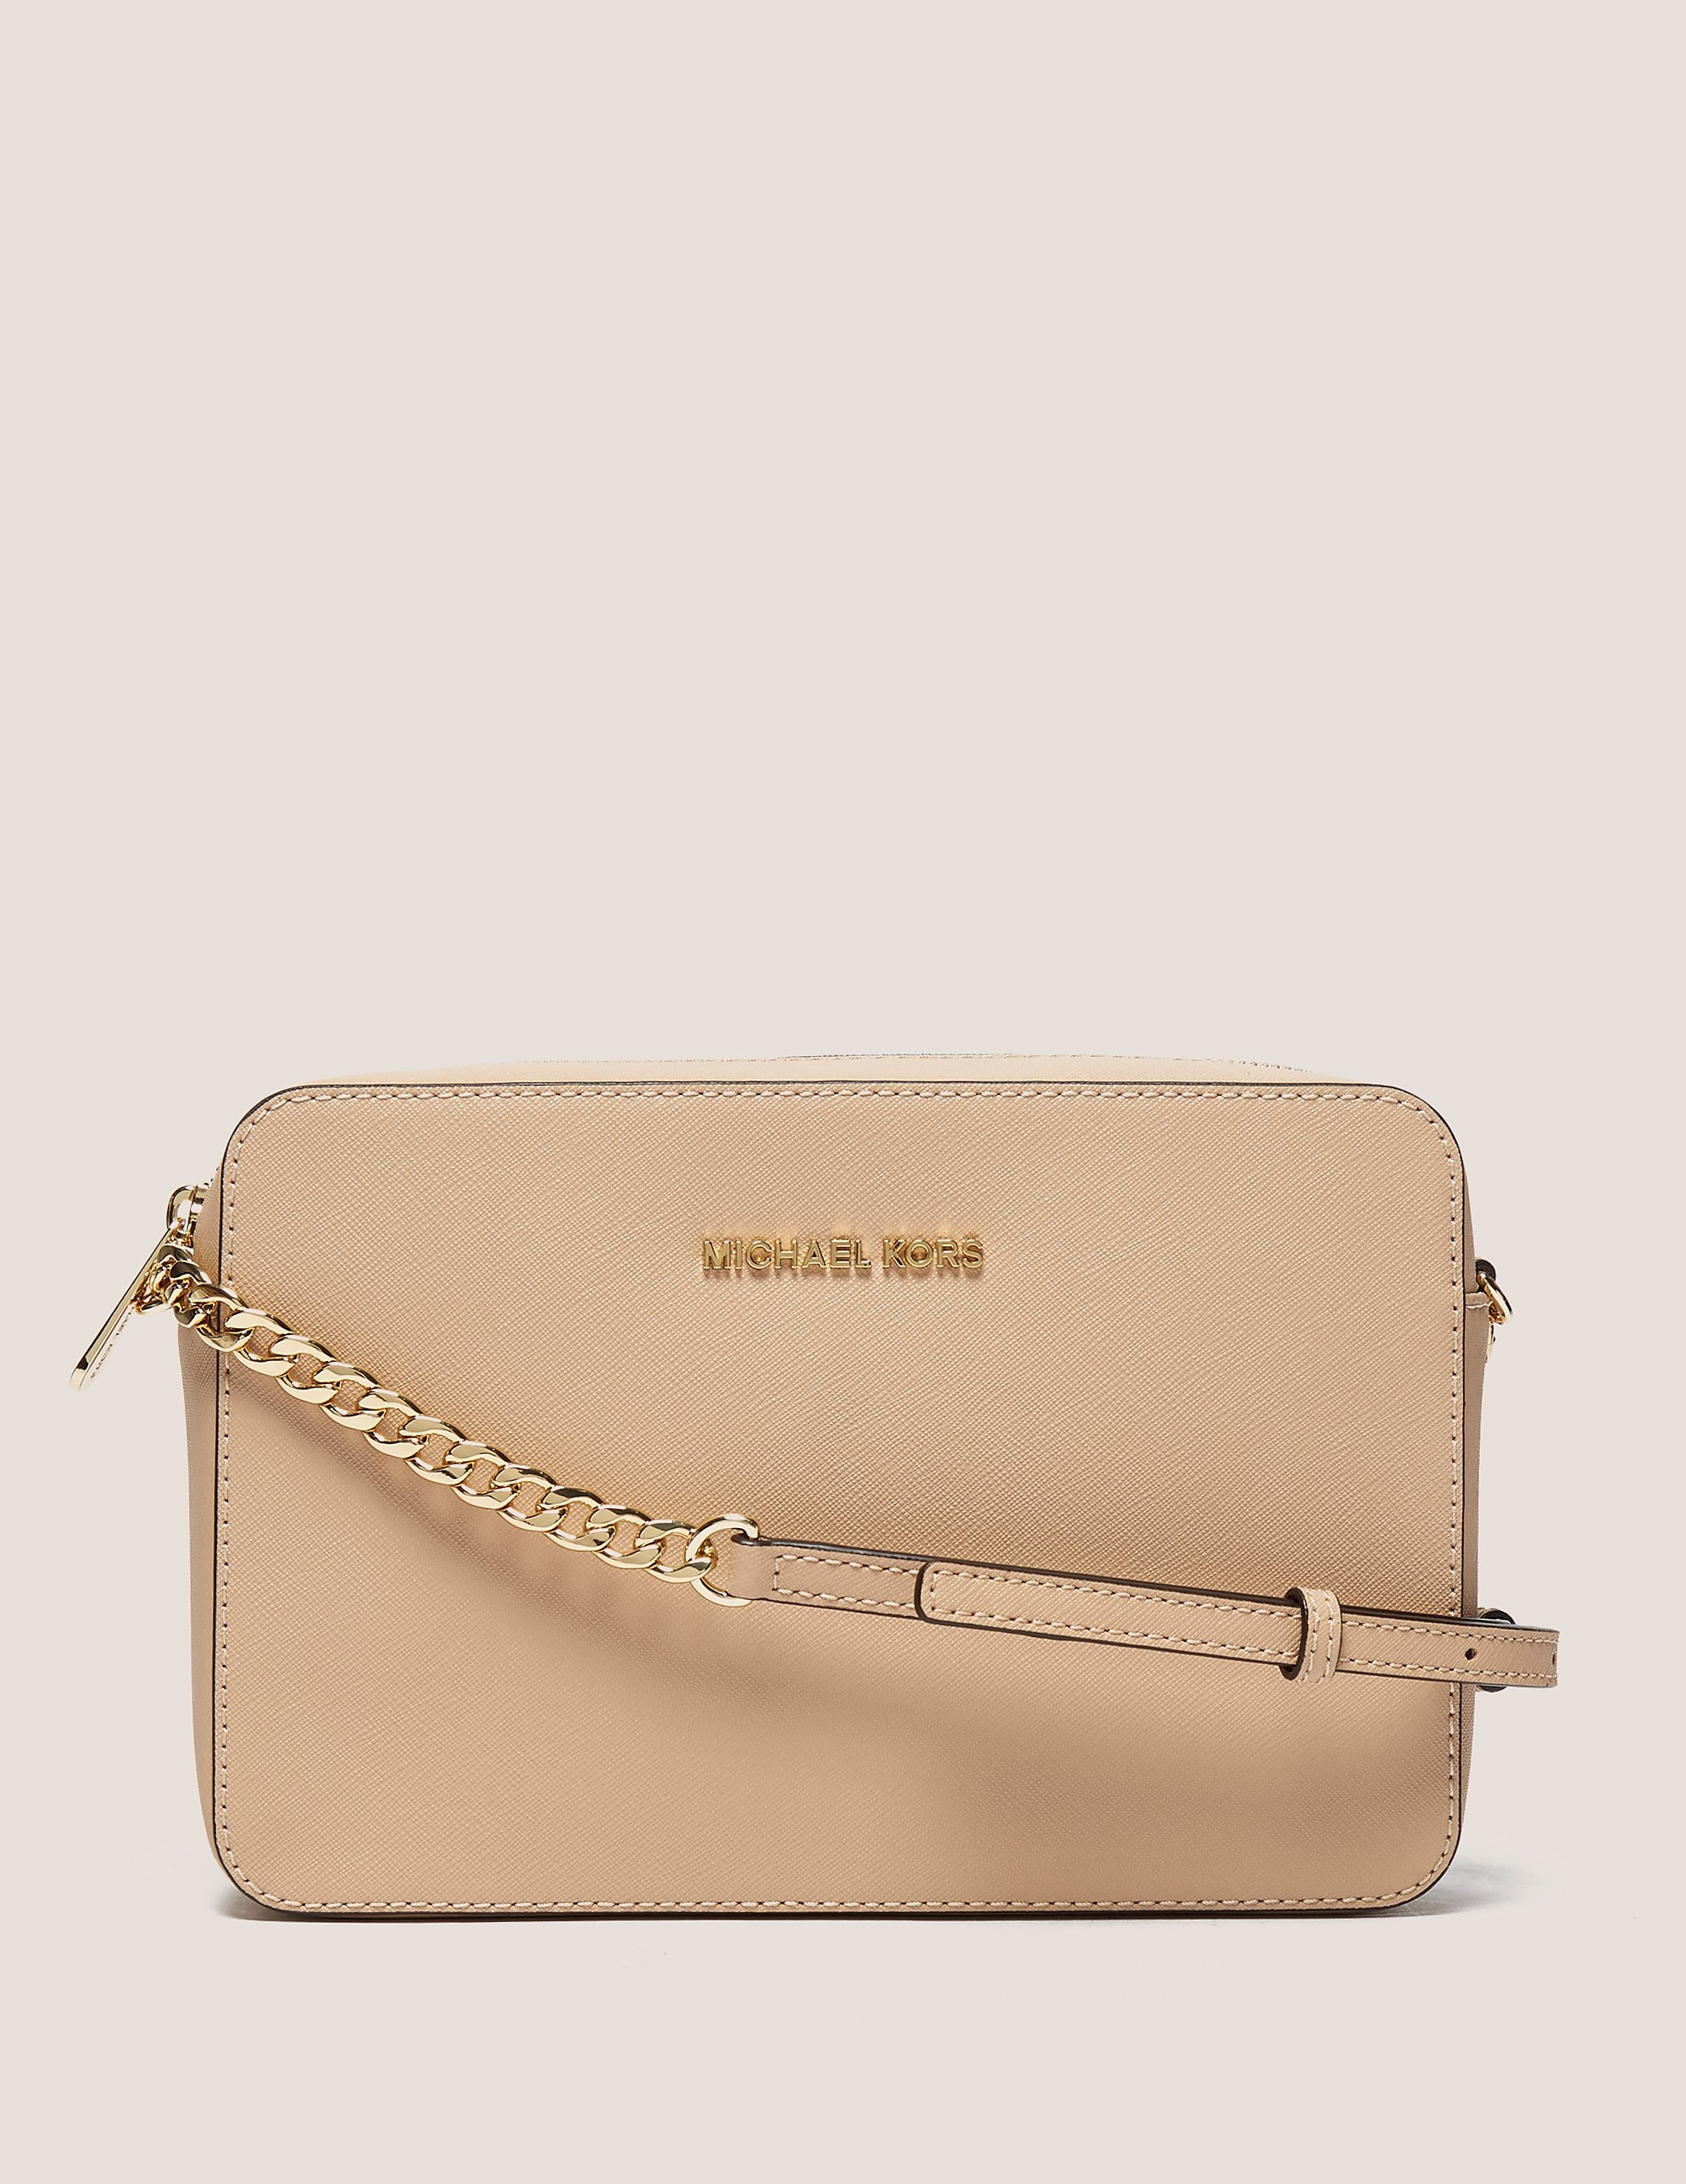 Michael Kors Jet Set Travel East West Crossbody